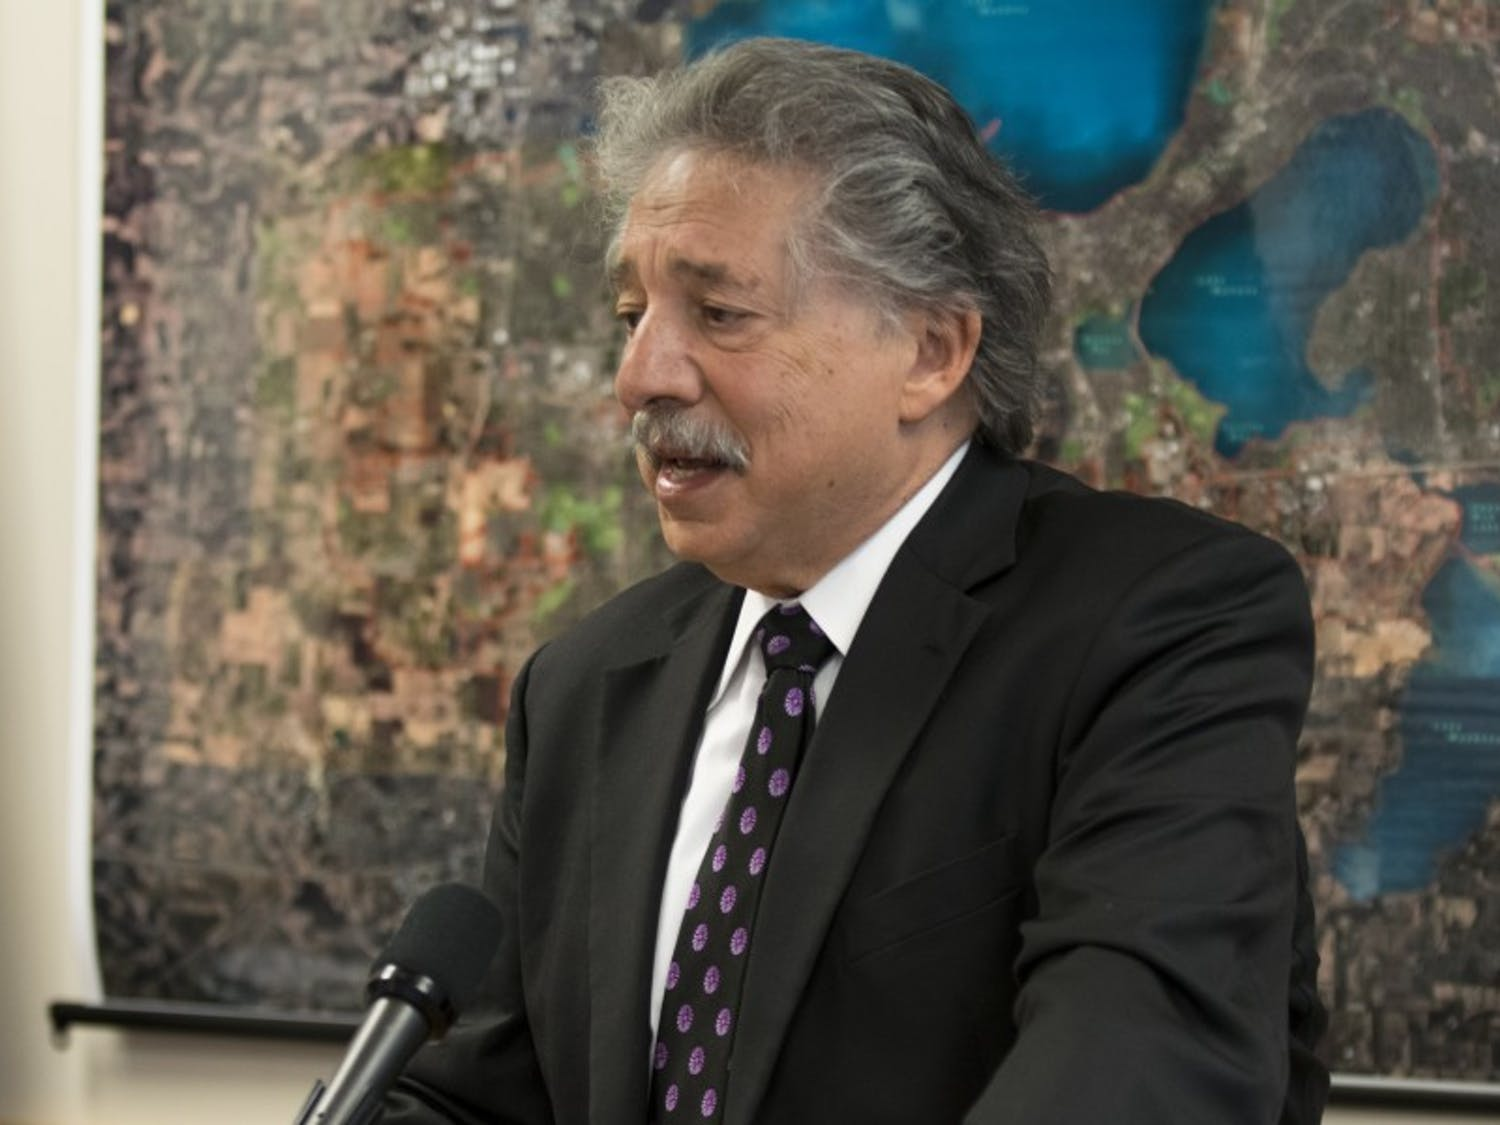 Madison Mayor Paul Soglin announced Tuesday he would appoint one of his deputy mayors to oversee an apartment complex that houses homeless families as a result of the large number of police calls made there.